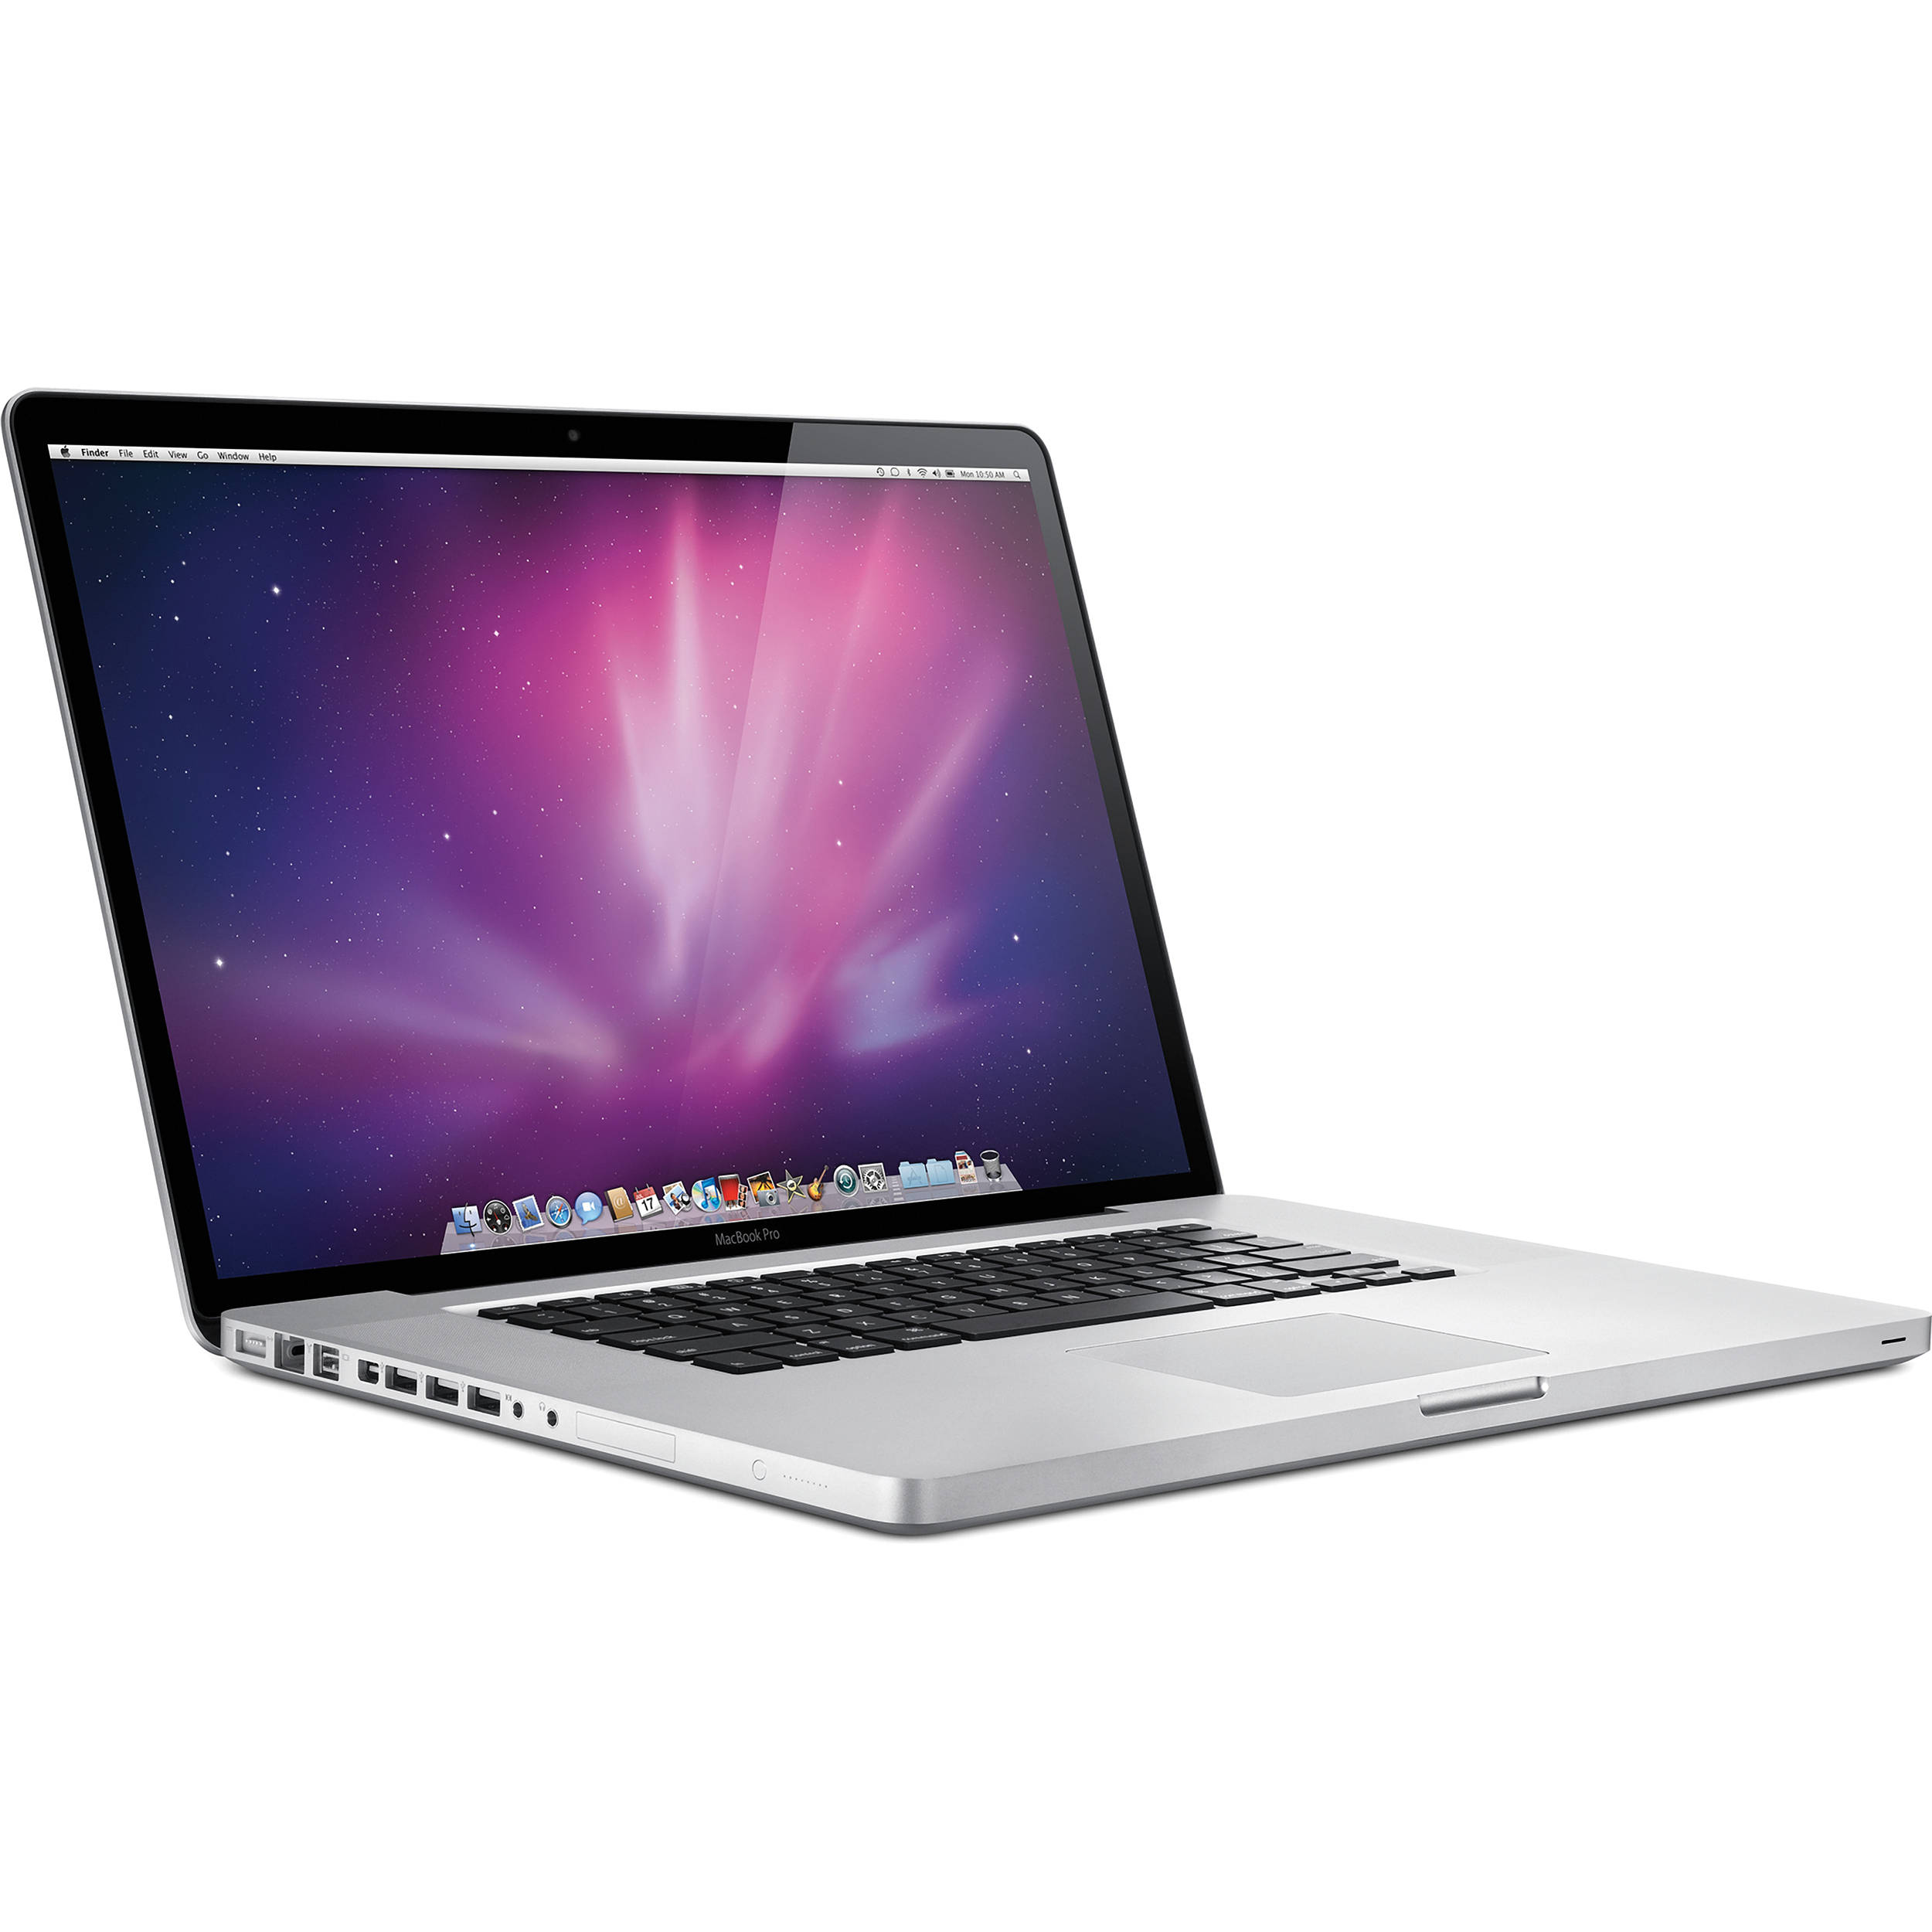 apple macbook pro swot Apple macbook pro mlh42ll/a 15-inch laptop with touch bar, 27ghz quad-core intel core i7, 512gb, retina display, space gray (discontinued by manufacturer).